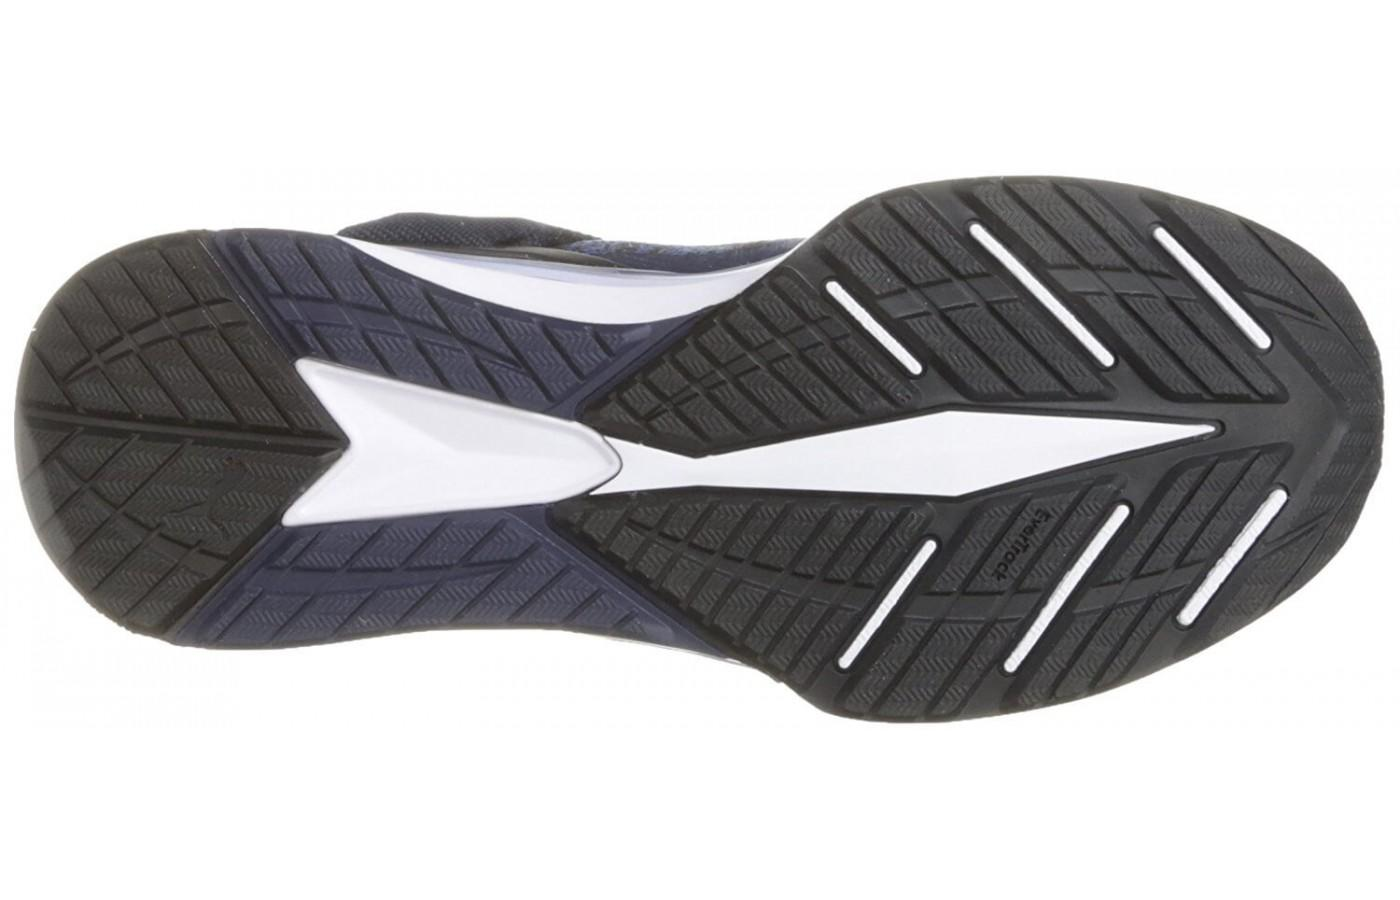 Deep flex grooves on the outsole provide extra flexibility